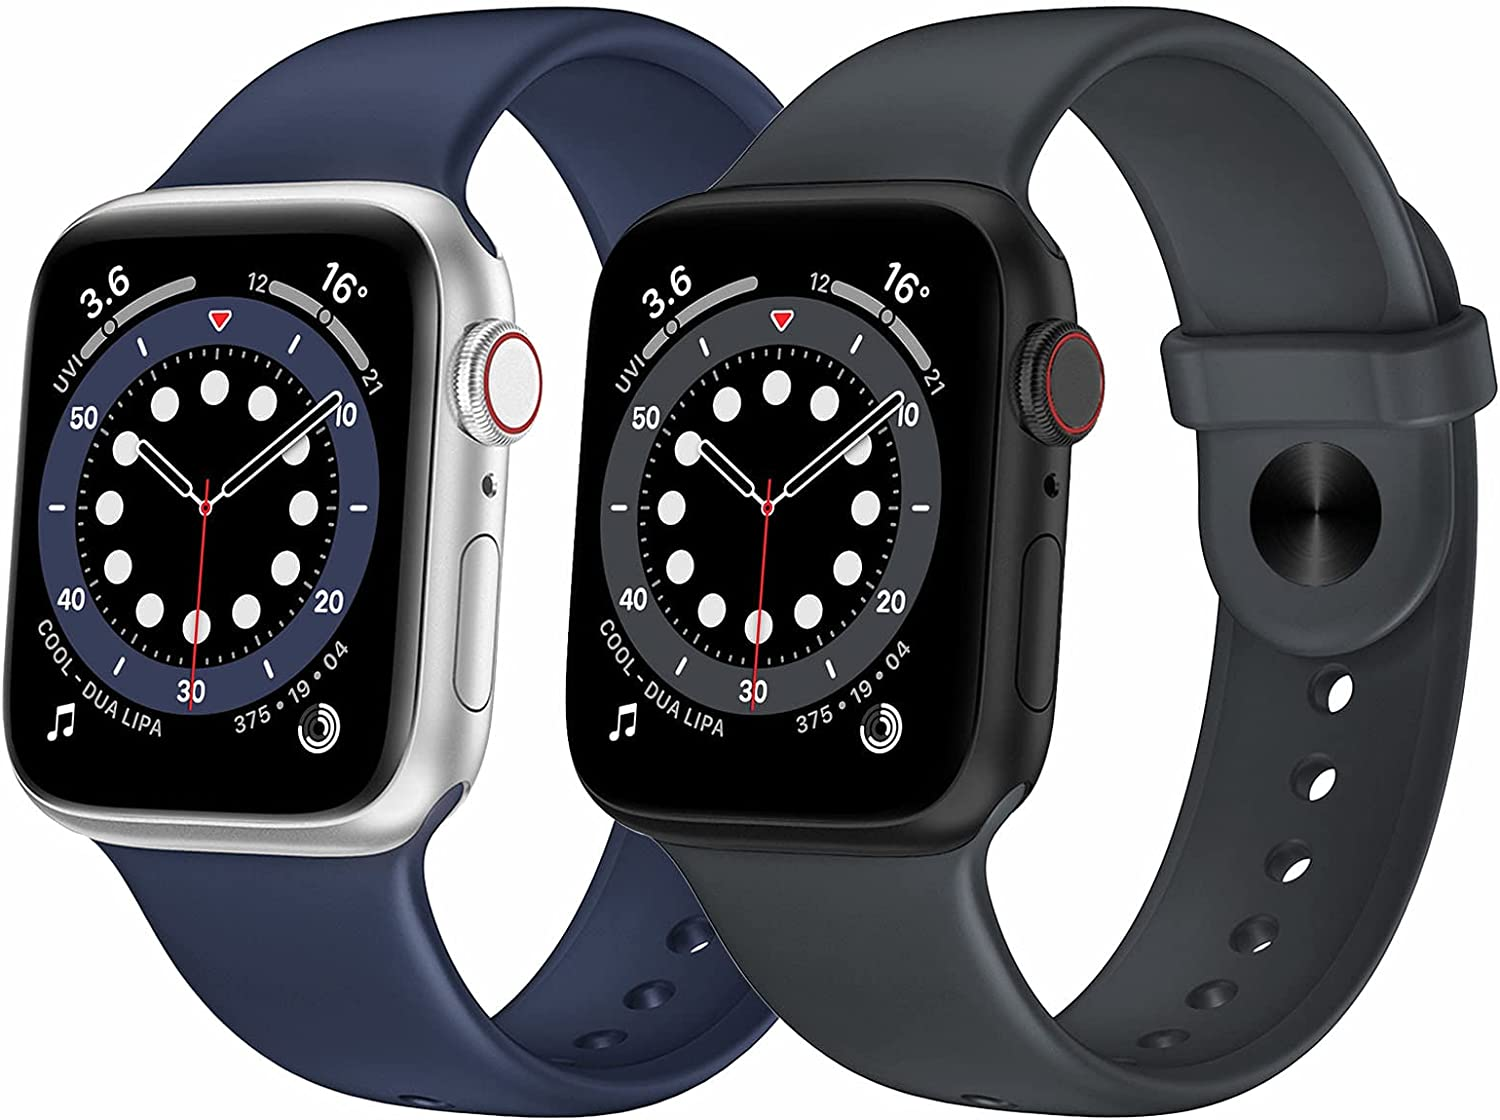 OUHENG 2 Pack Sport Band Compatible with Apple Watch Band 41mm 40mm 38mm 45mm 44mm 42mm, Silicone Band Replacement Strap for iWatch Series 7/6/5/4/3/2/1 SE (Dark Gray/Midnight Blue, 41mm 40mm 38mm)